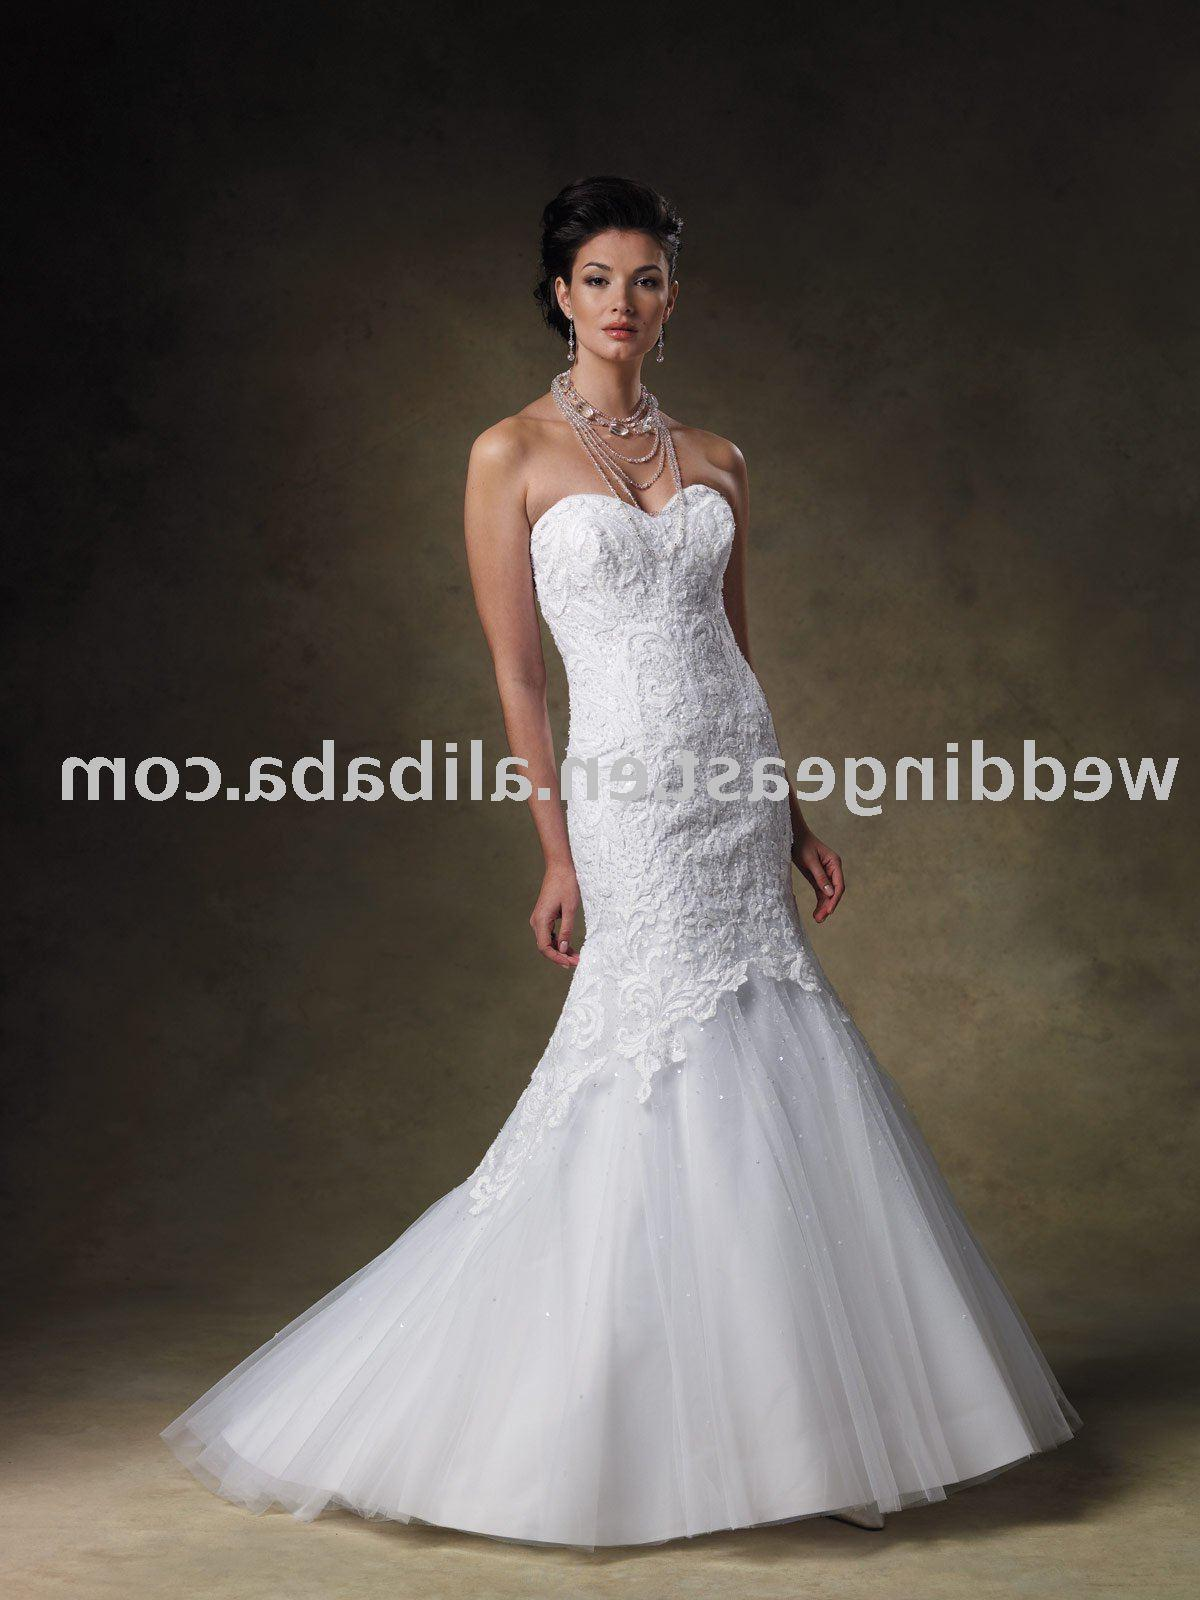 See larger image: A-line strapless white lace wedding gown-sqsm121